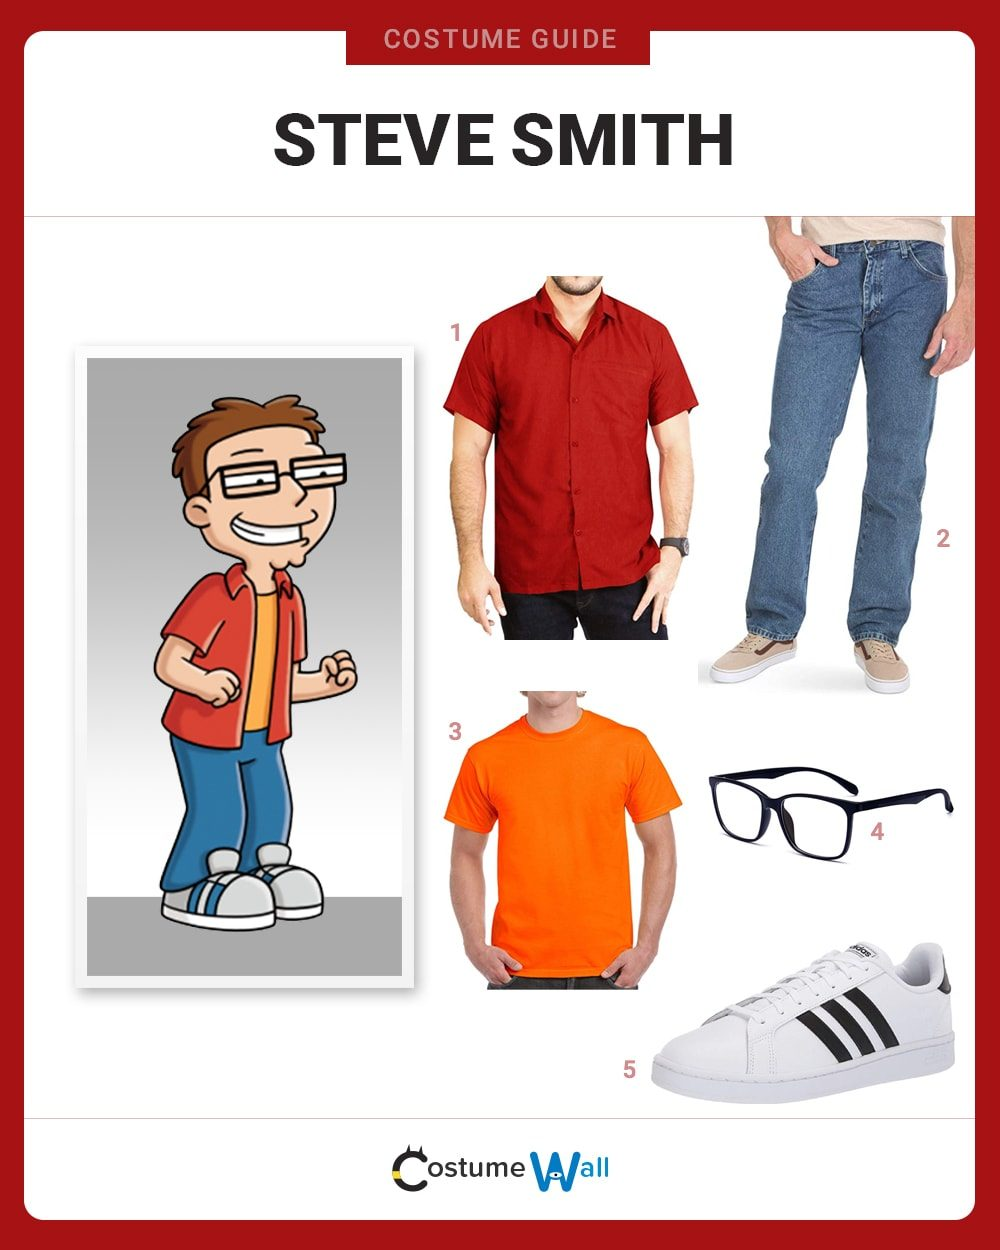 Steve Smith Costume Guide